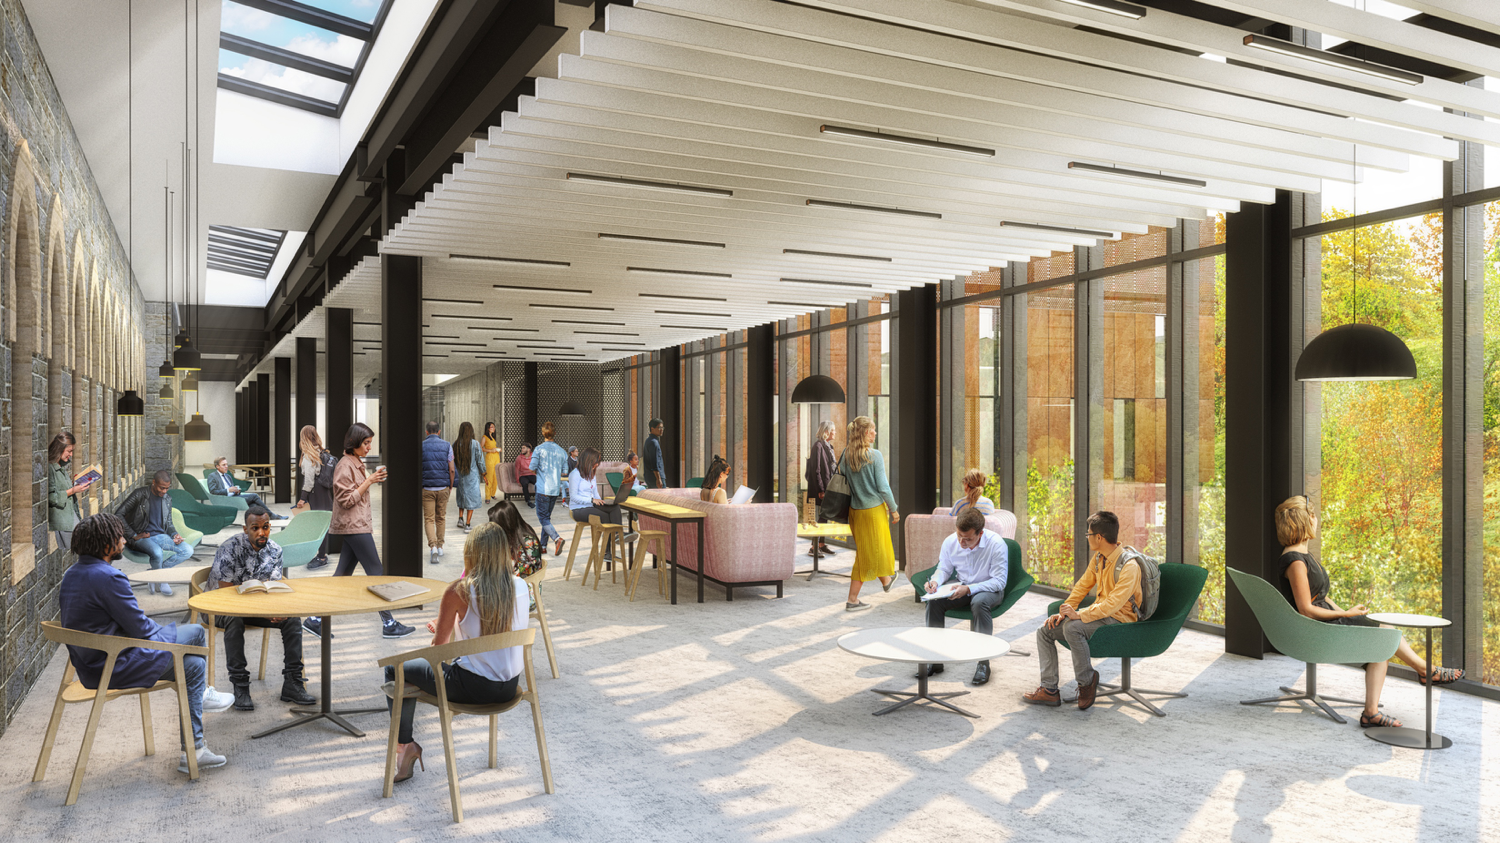 """The Avenue"" will be a large, open-concourse area for students to move through the Clayton University Center at Packer Hall as well as gather to relax or study."